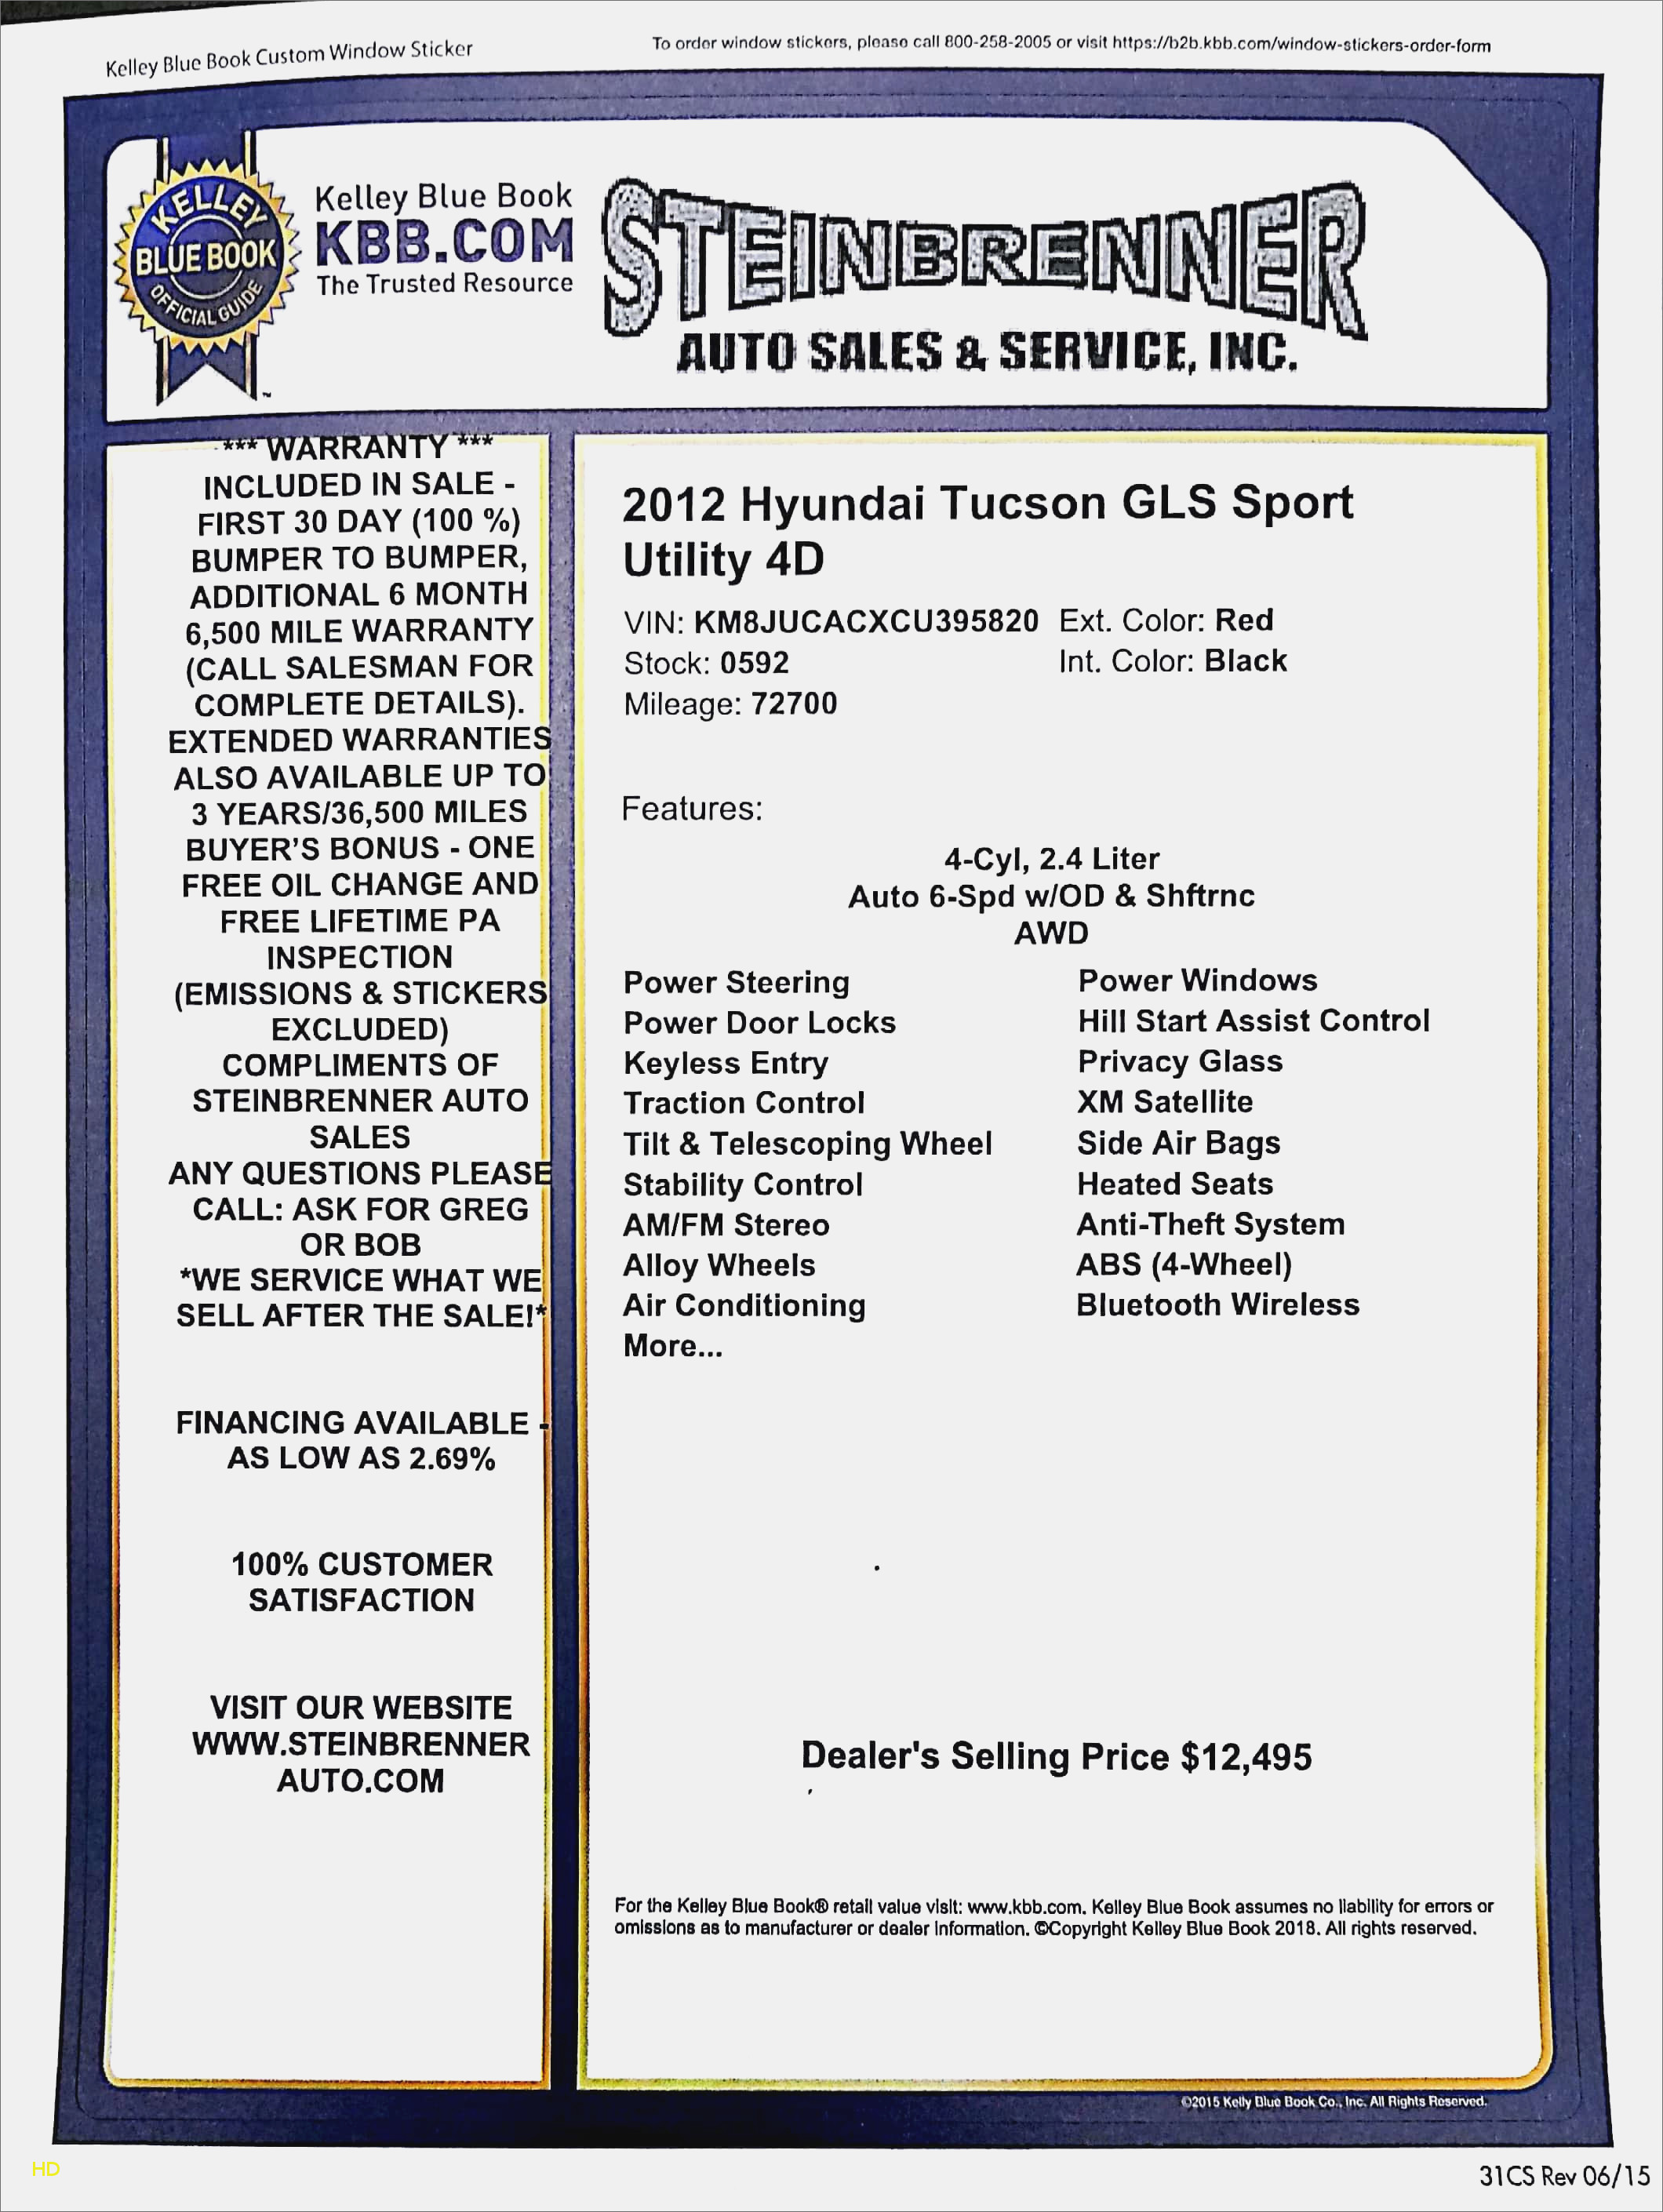 Blue Book Used Car New Kelley Blue Book Dealer Invoice Free Books to Read Kelley Blue Book